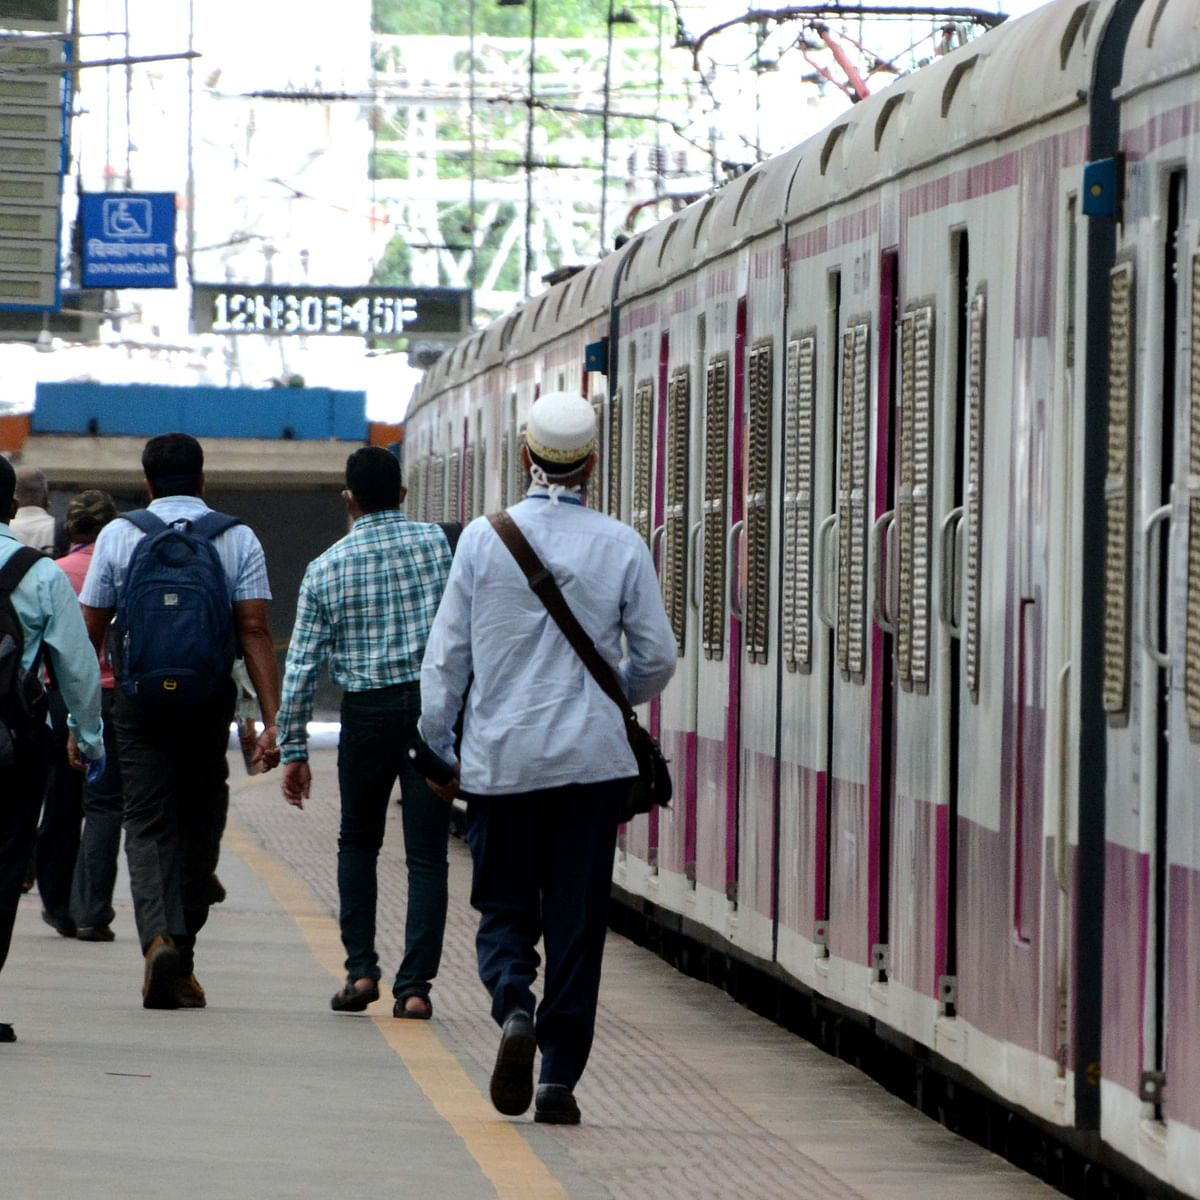 'Only 12.4 lakh passengers can travel': WR, CR on resuming local trains for general public